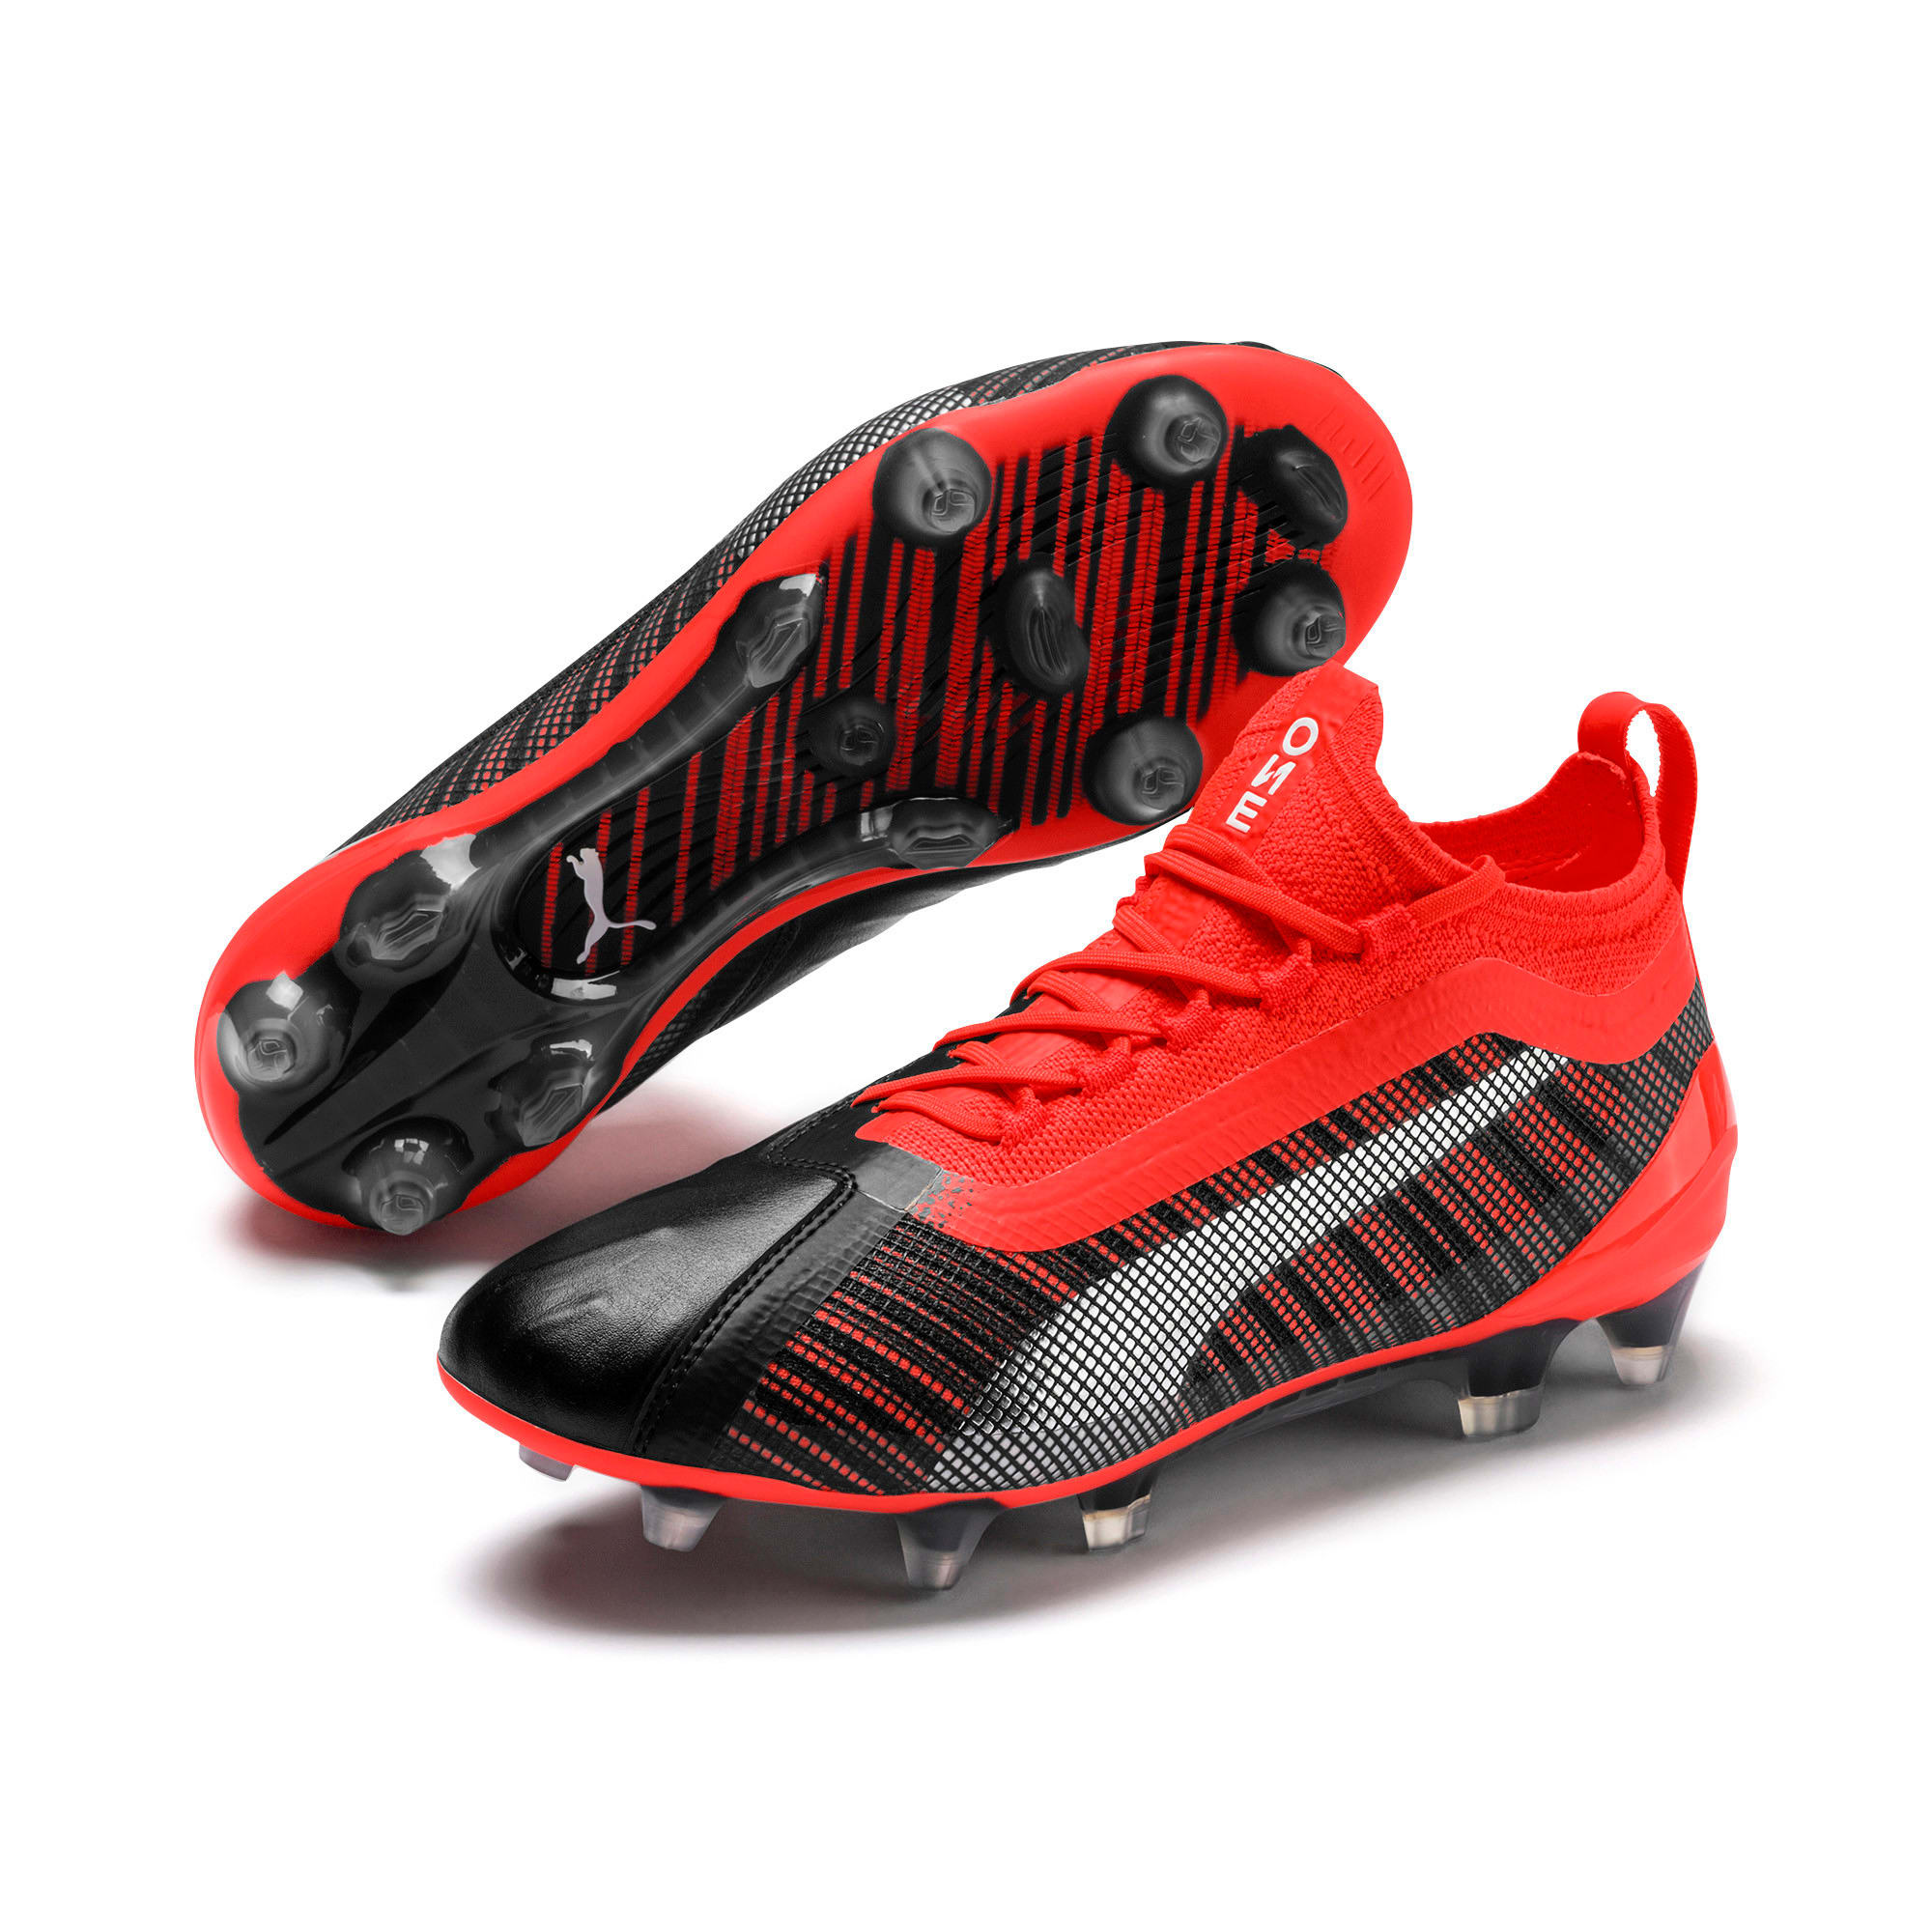 Thumbnail 2 of PUMA ONE 5.1 voetbalschoenen voor jeugd, Black-Nrgy Red-Aged Silver, medium